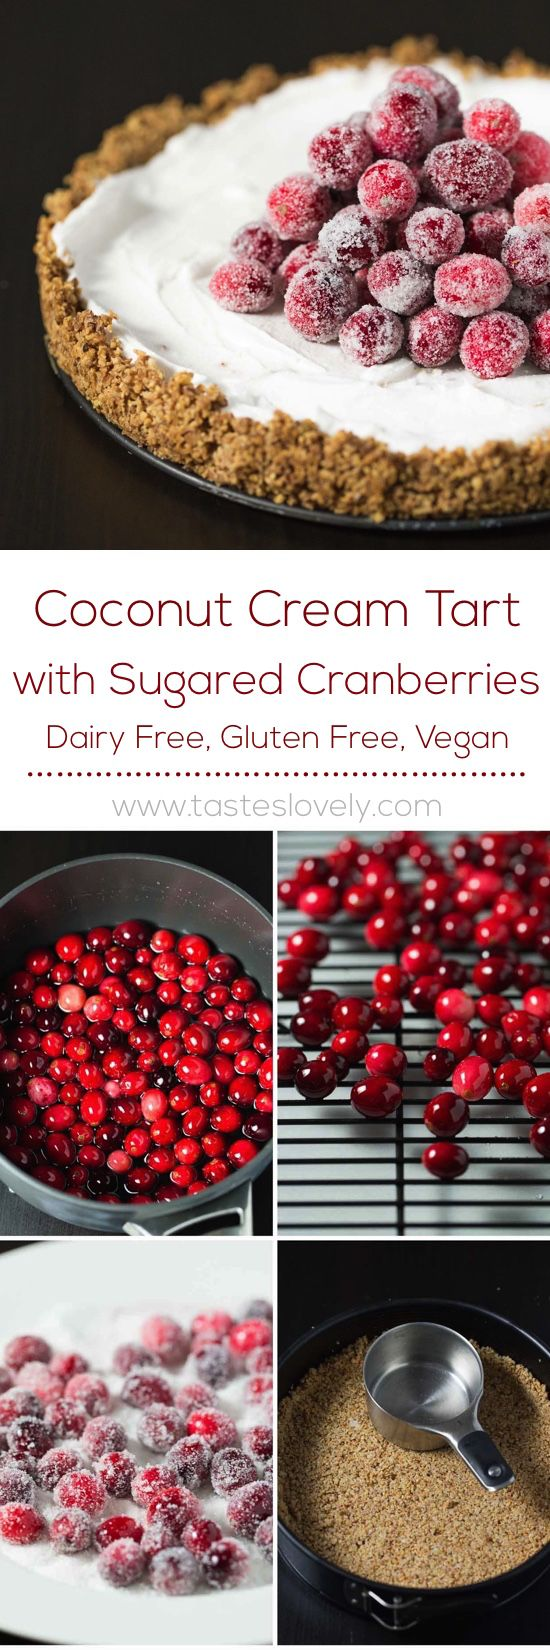 Coconut Cream Tart with Sugared Cranberries - Dairy Free, Vegan, Gluten Free and so simple and delicious!